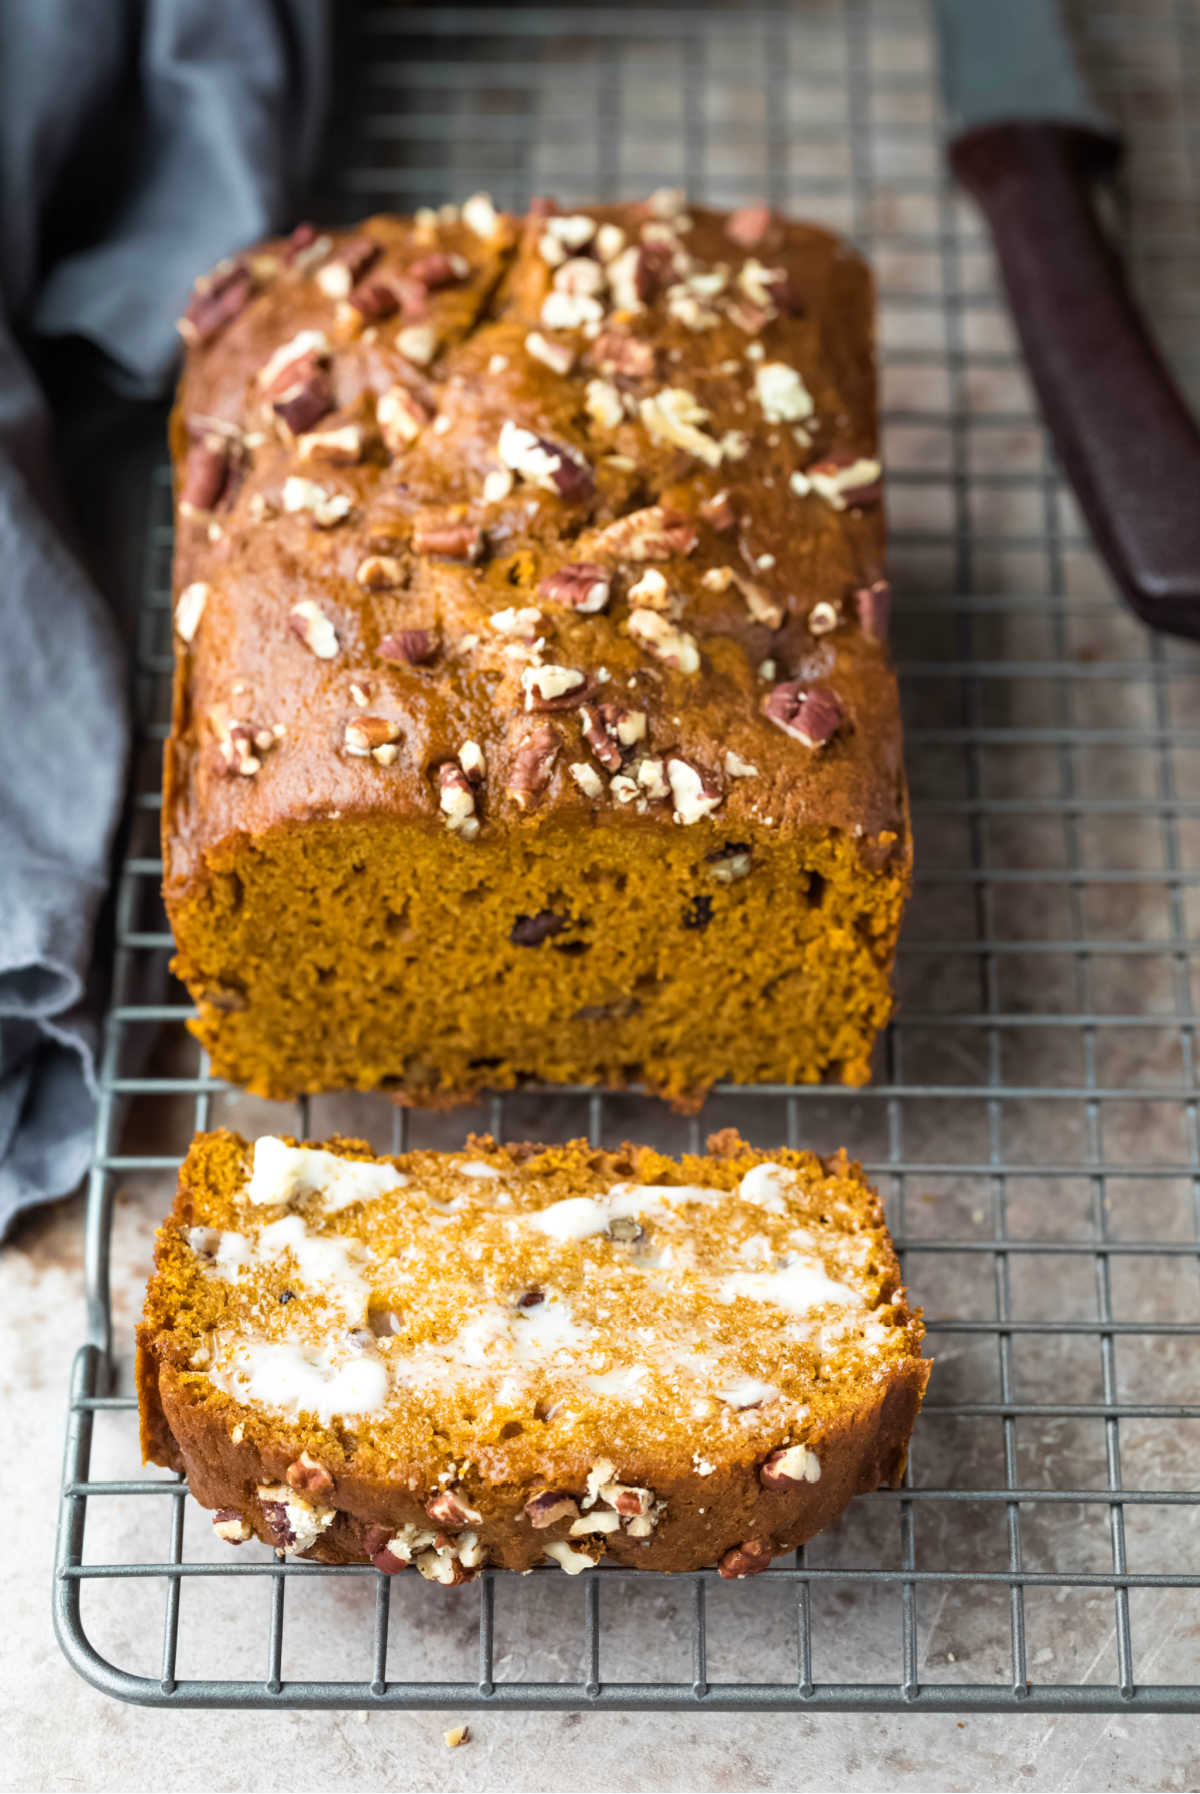 Loaf of pumpkin nut bread with one buttered slice next to it.